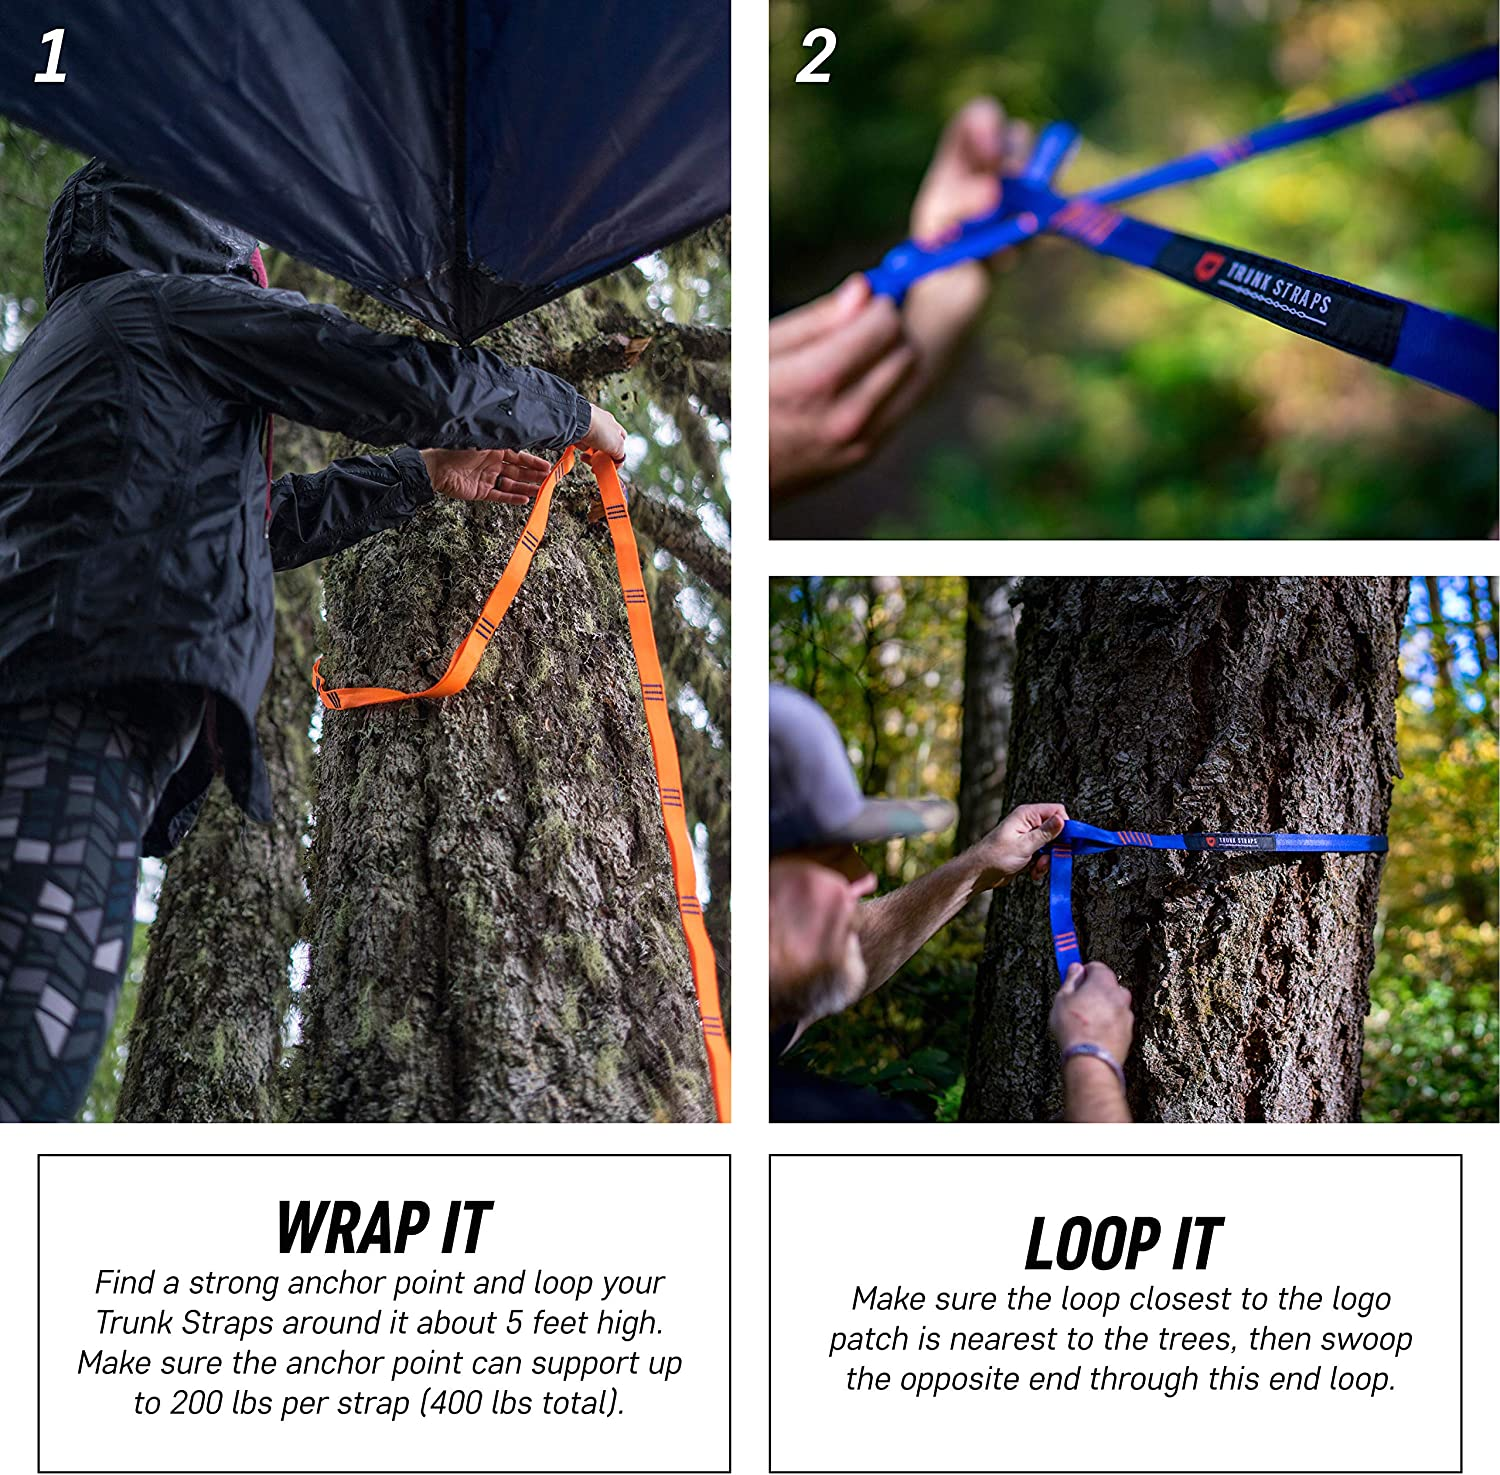 Teal Adjustable Suspension System Tree Trunk Straps with Carry Bag Included One Size Fits All Grand Trunk Hammock Straps